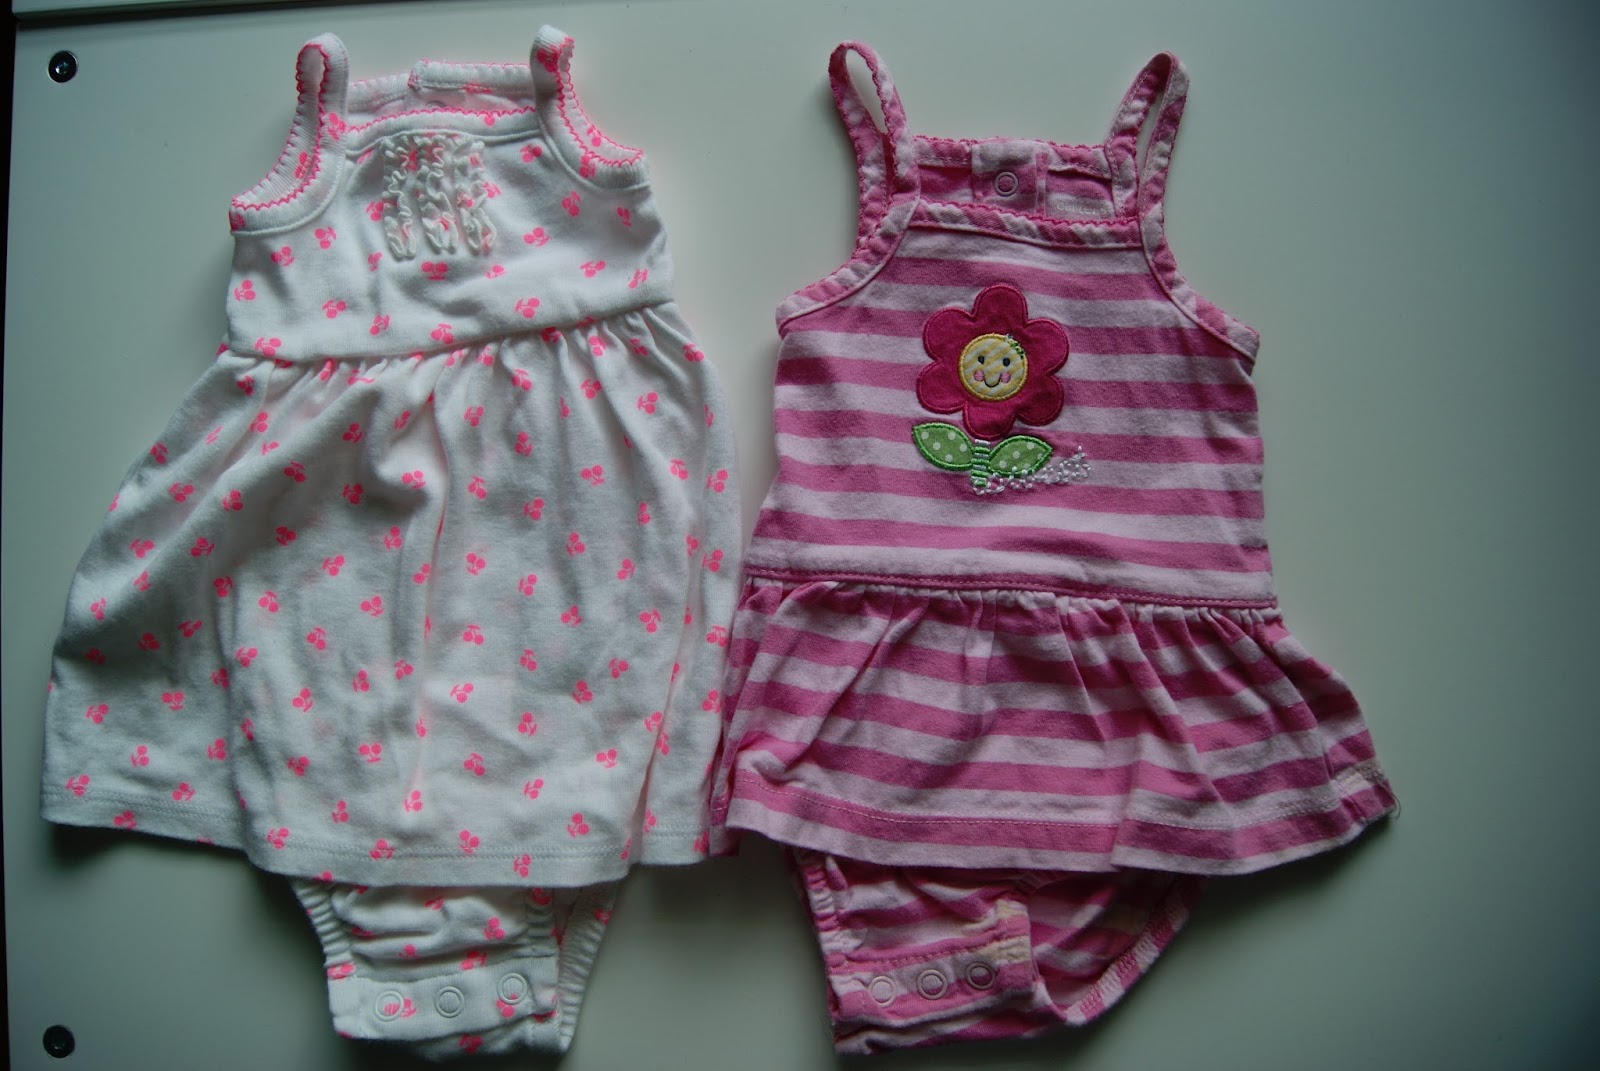 No-sew 18-inch doll dresses from newborn onsie dresses